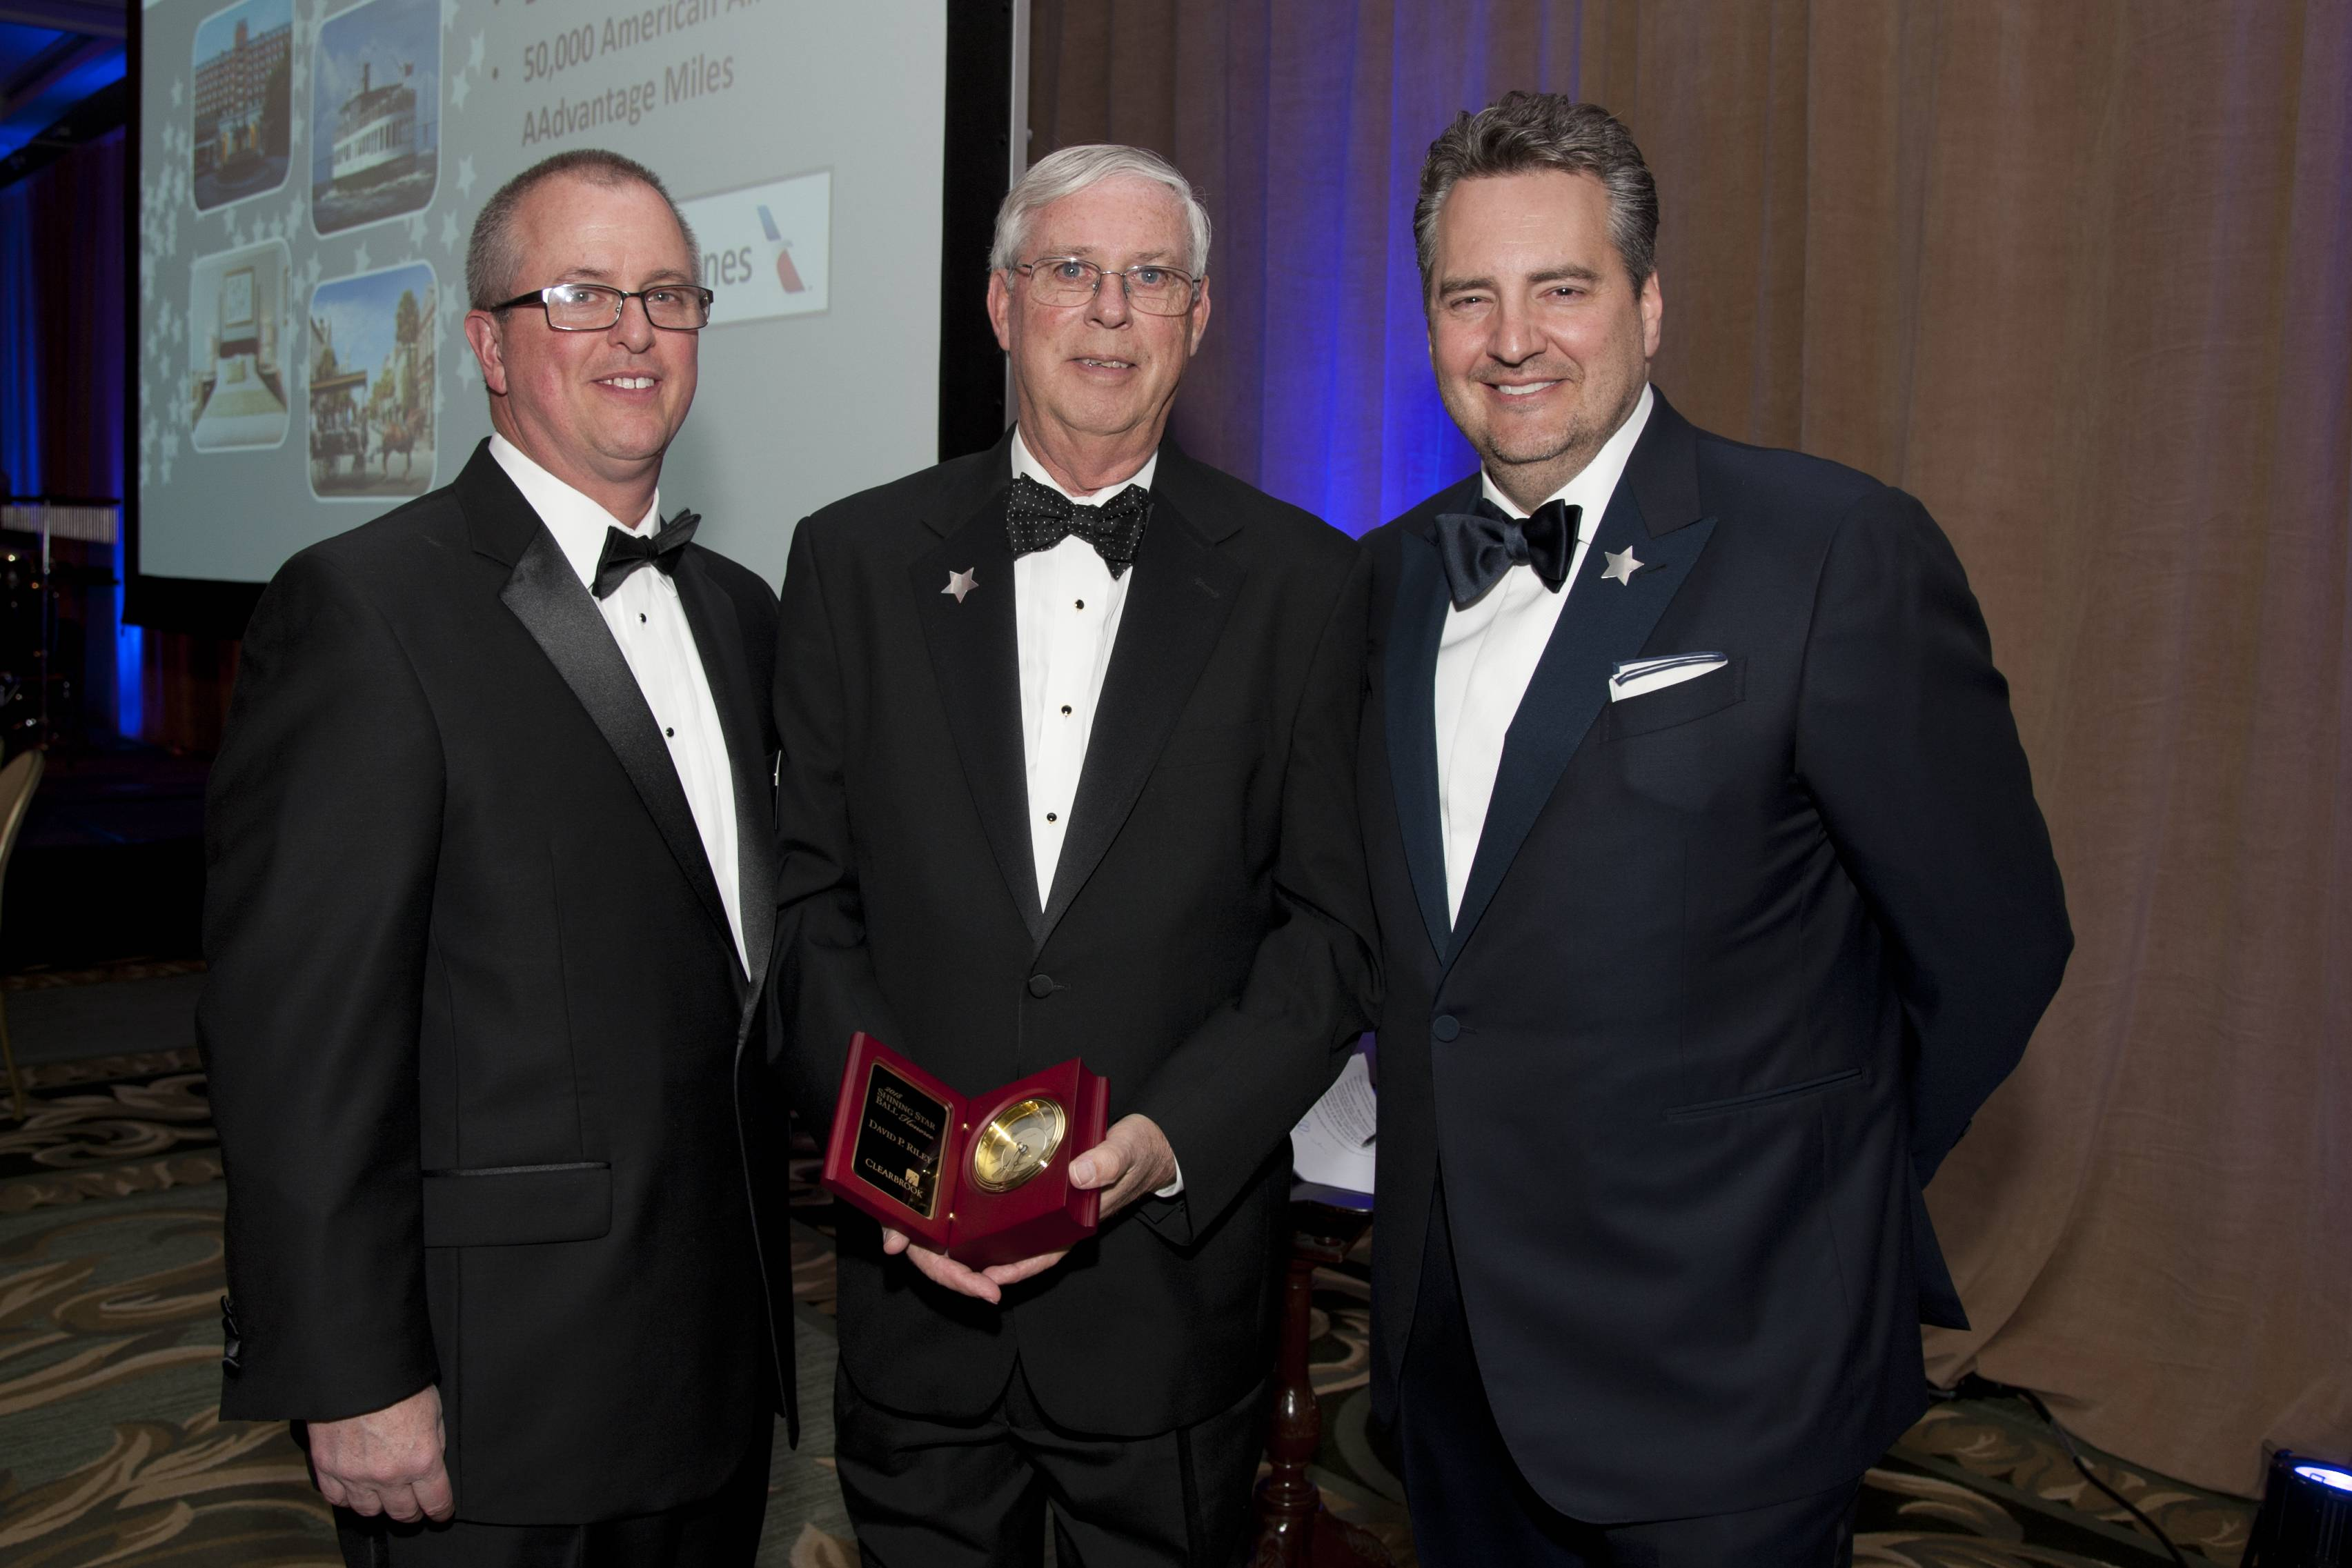 COURTESY OF ROBERT CARLFrom left, Anthony DiVittorio, award recipient David Riley and radio personality Roe Conn during the Clearbrook Event at the Four Seasons Hotel Chicago on Friday, April 27, 2018.